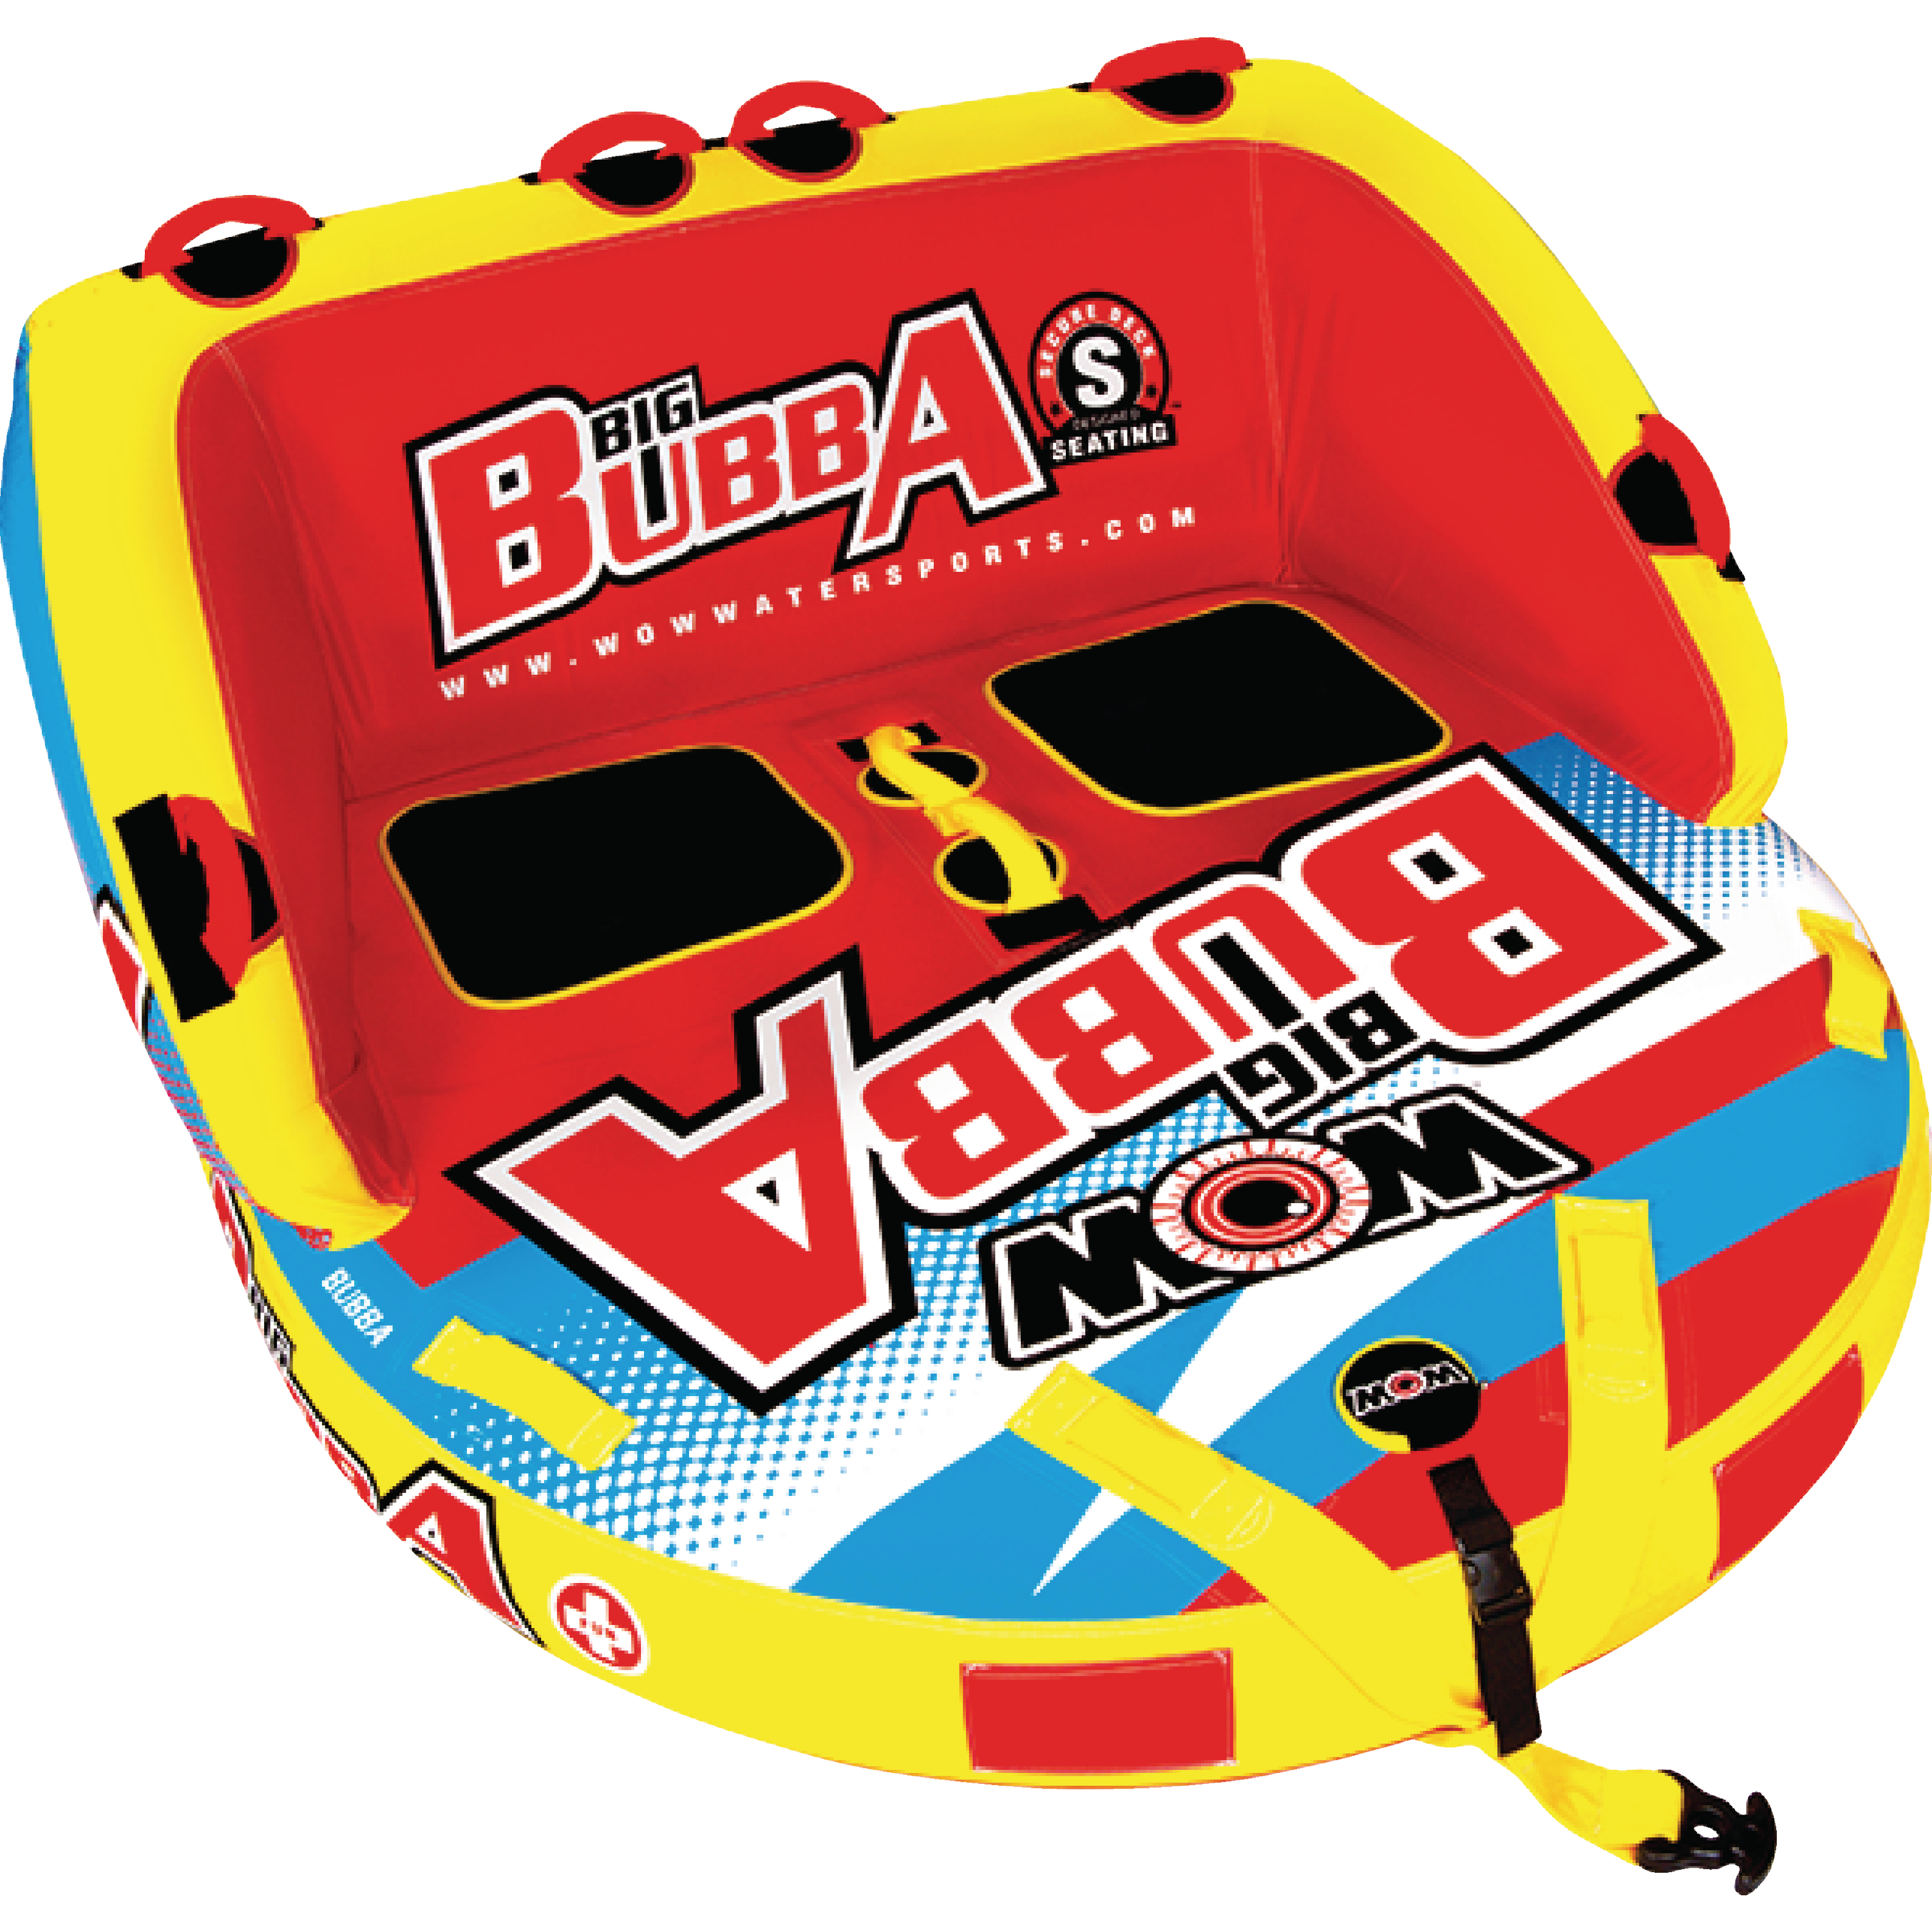 WOW 171050 Big Bubba Hi-Vis Inflatable Towable for 1-2 Riders by WOW Watersports USA